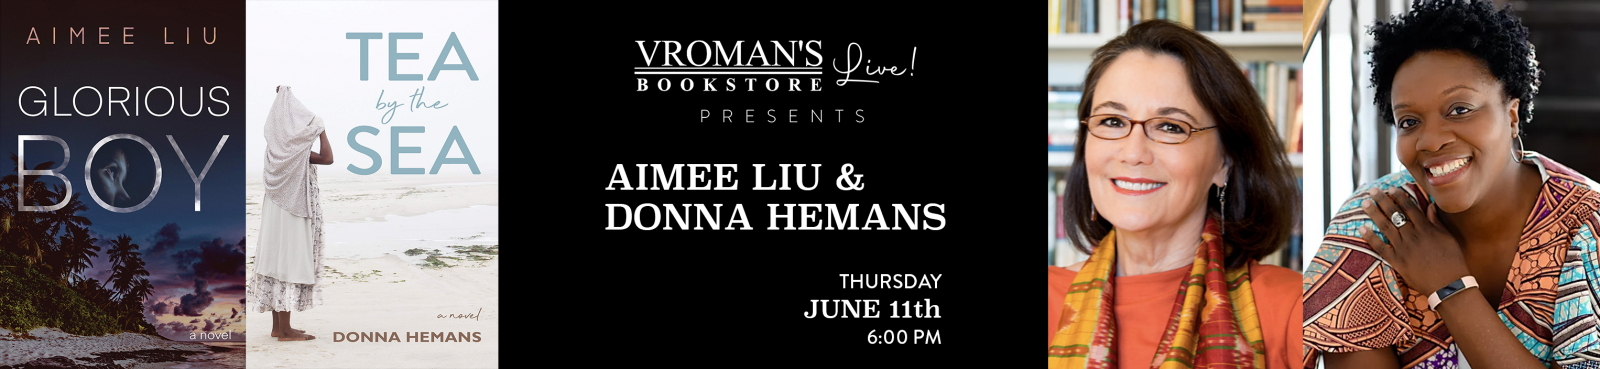 Vroman's Live Presents Aimee Liu and Donna Hemans on Crowdcast, Thursday June 11 at 6pm